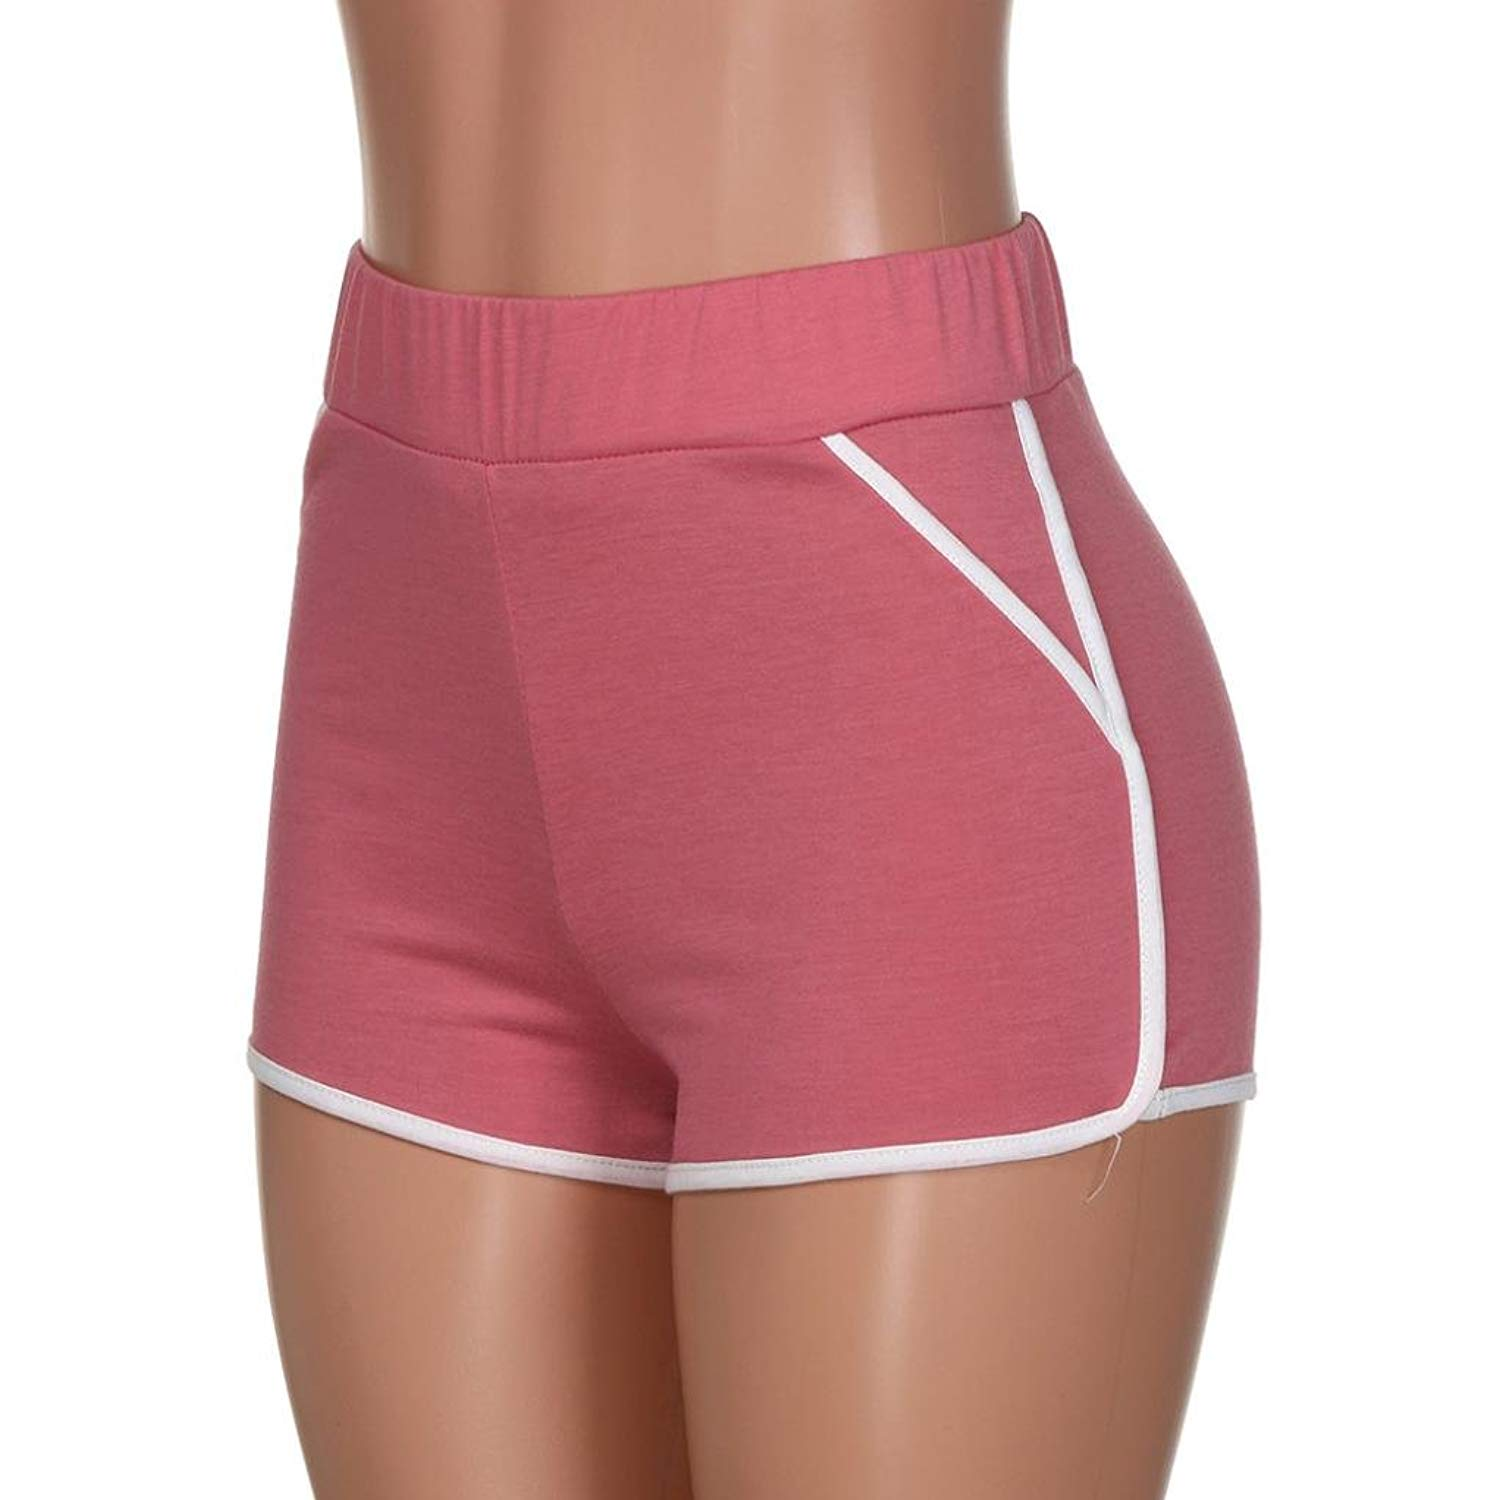 kingfansion Shorts for Womens Summer Pants Women Sports Shorts Gym Workout Waistband Yoga Running Shorts